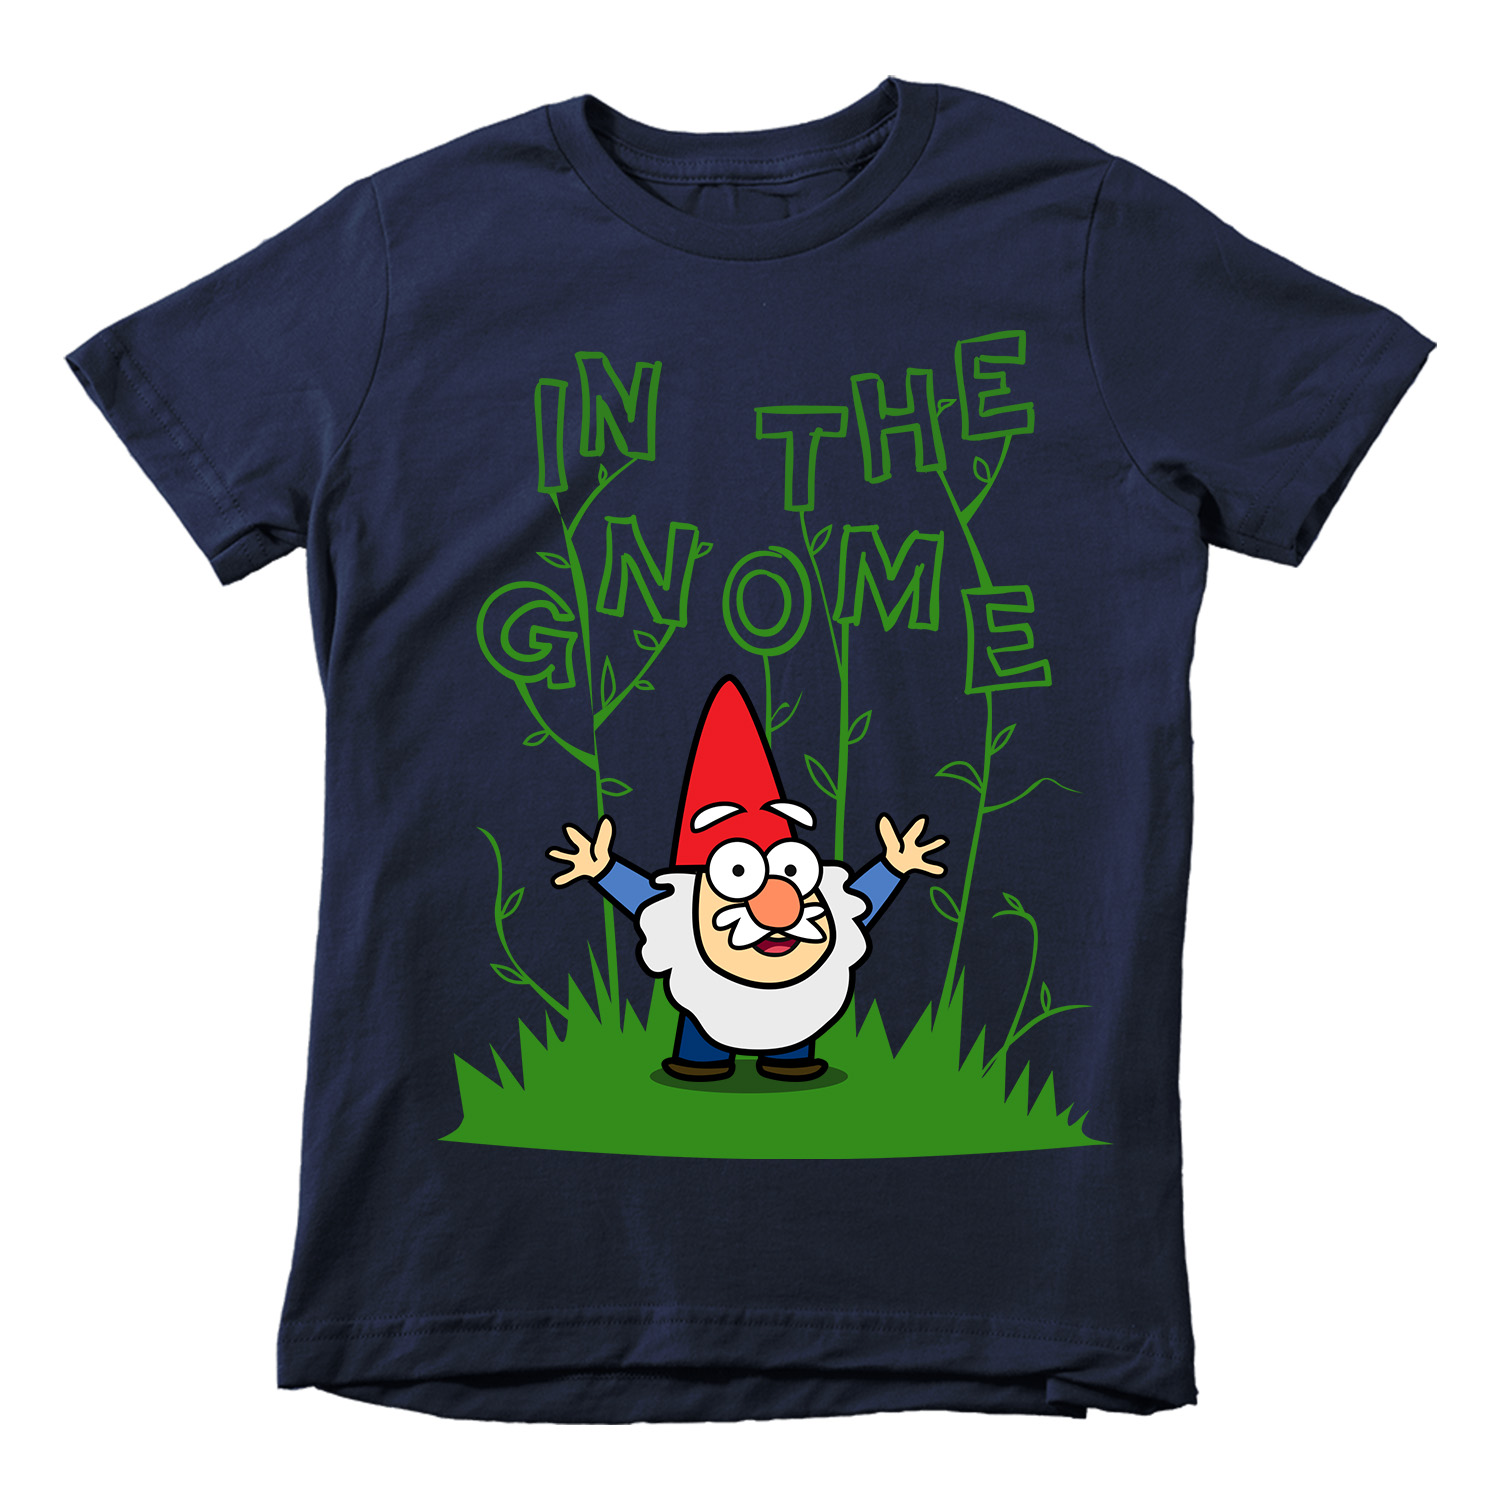 25 playful traditional school t shirt designs for a school for Garden t shirt designs